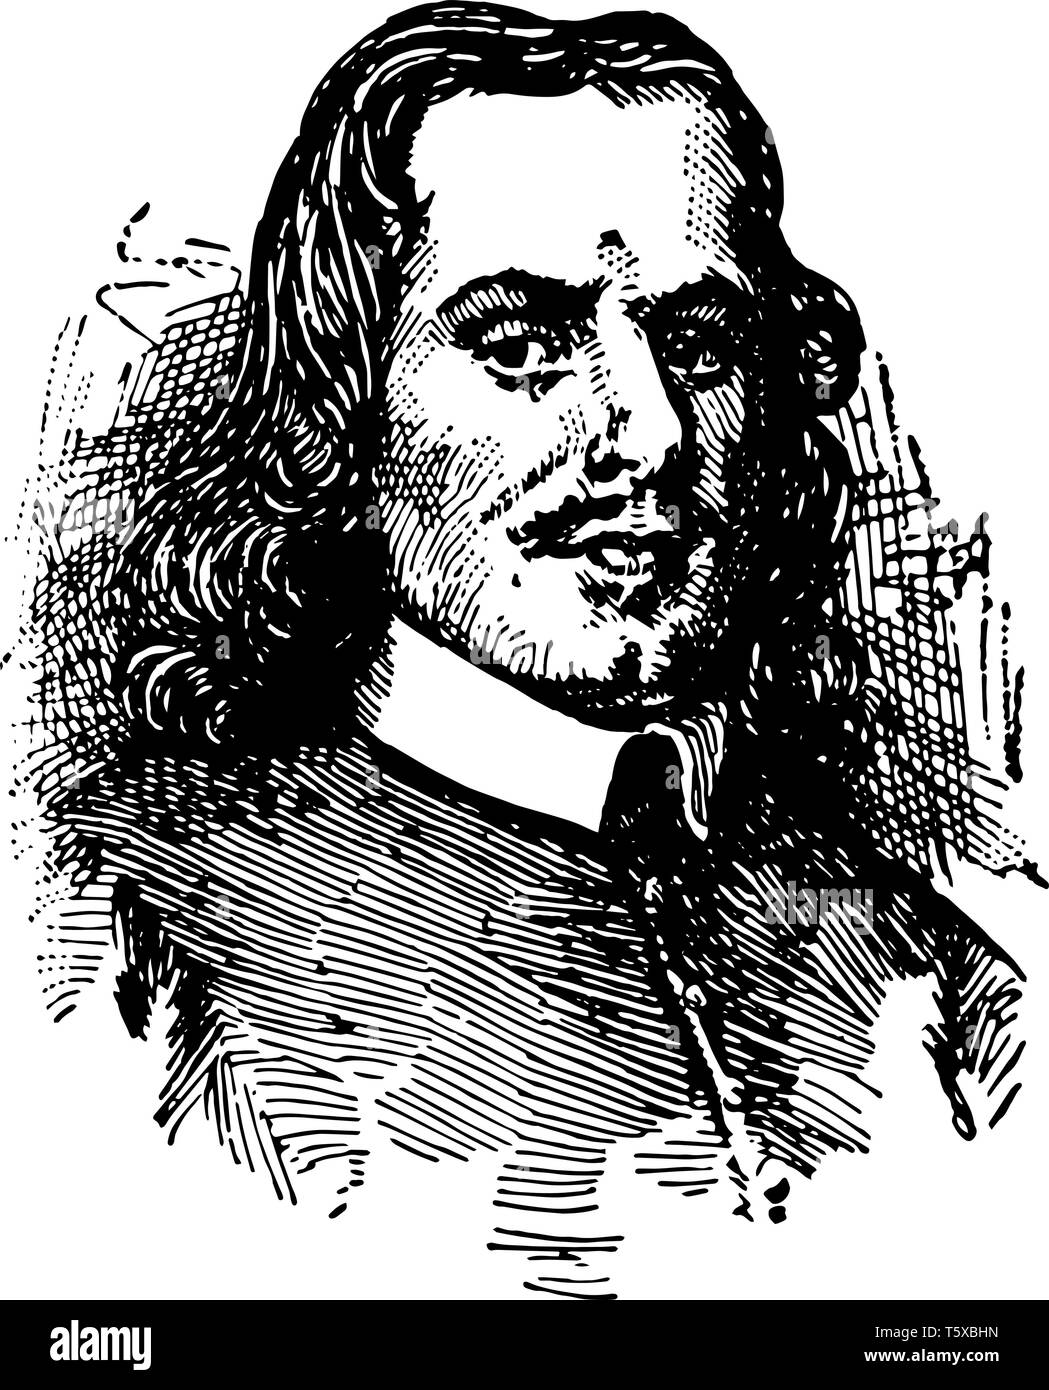 John Bunyan 1628 to 1688 he was an English writer and puritan preacher famous as the author of the Christian allegory The Pilgrims Progress vintage li - Stock Image